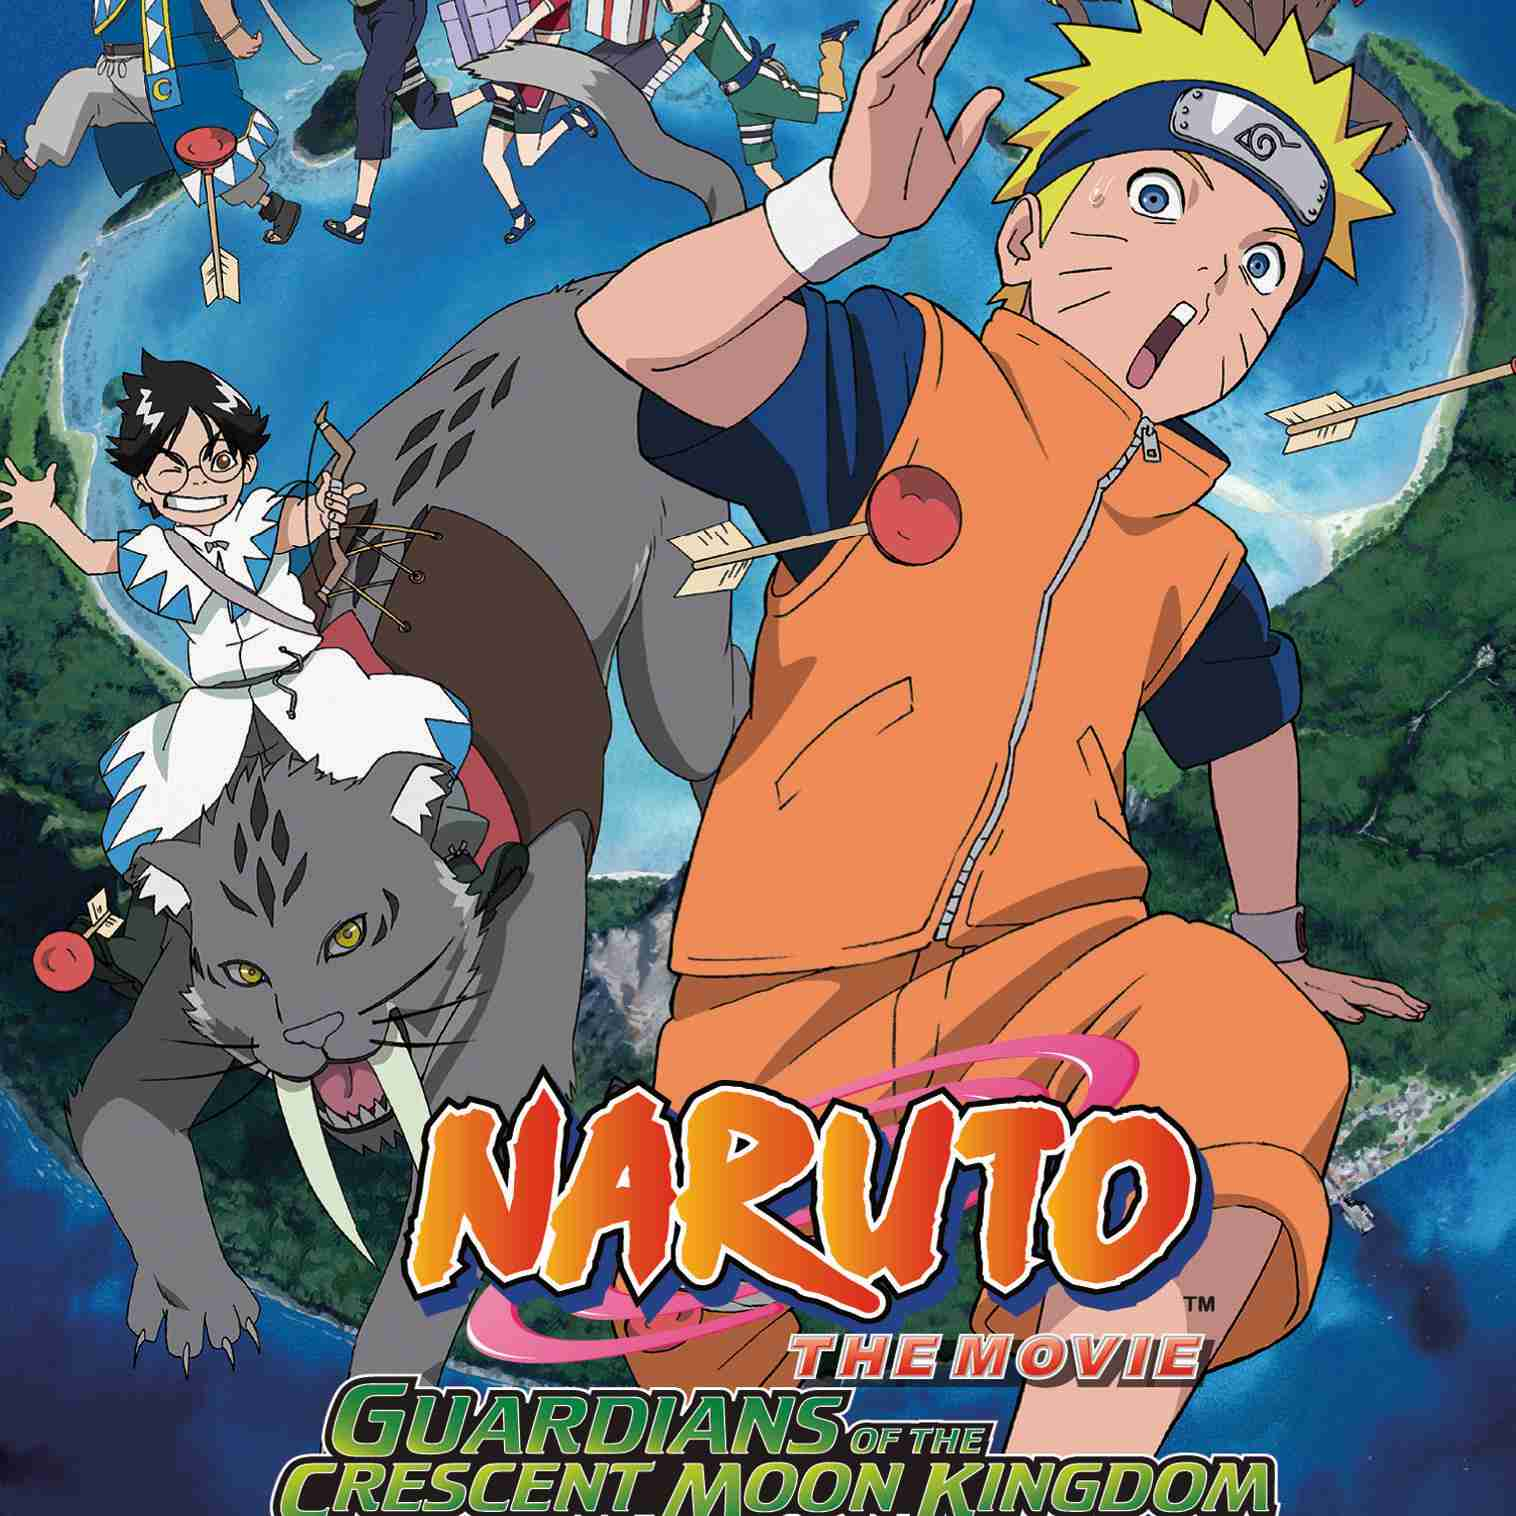 Naruto Anime Movies DVD and Blu-ray Cover Gallery